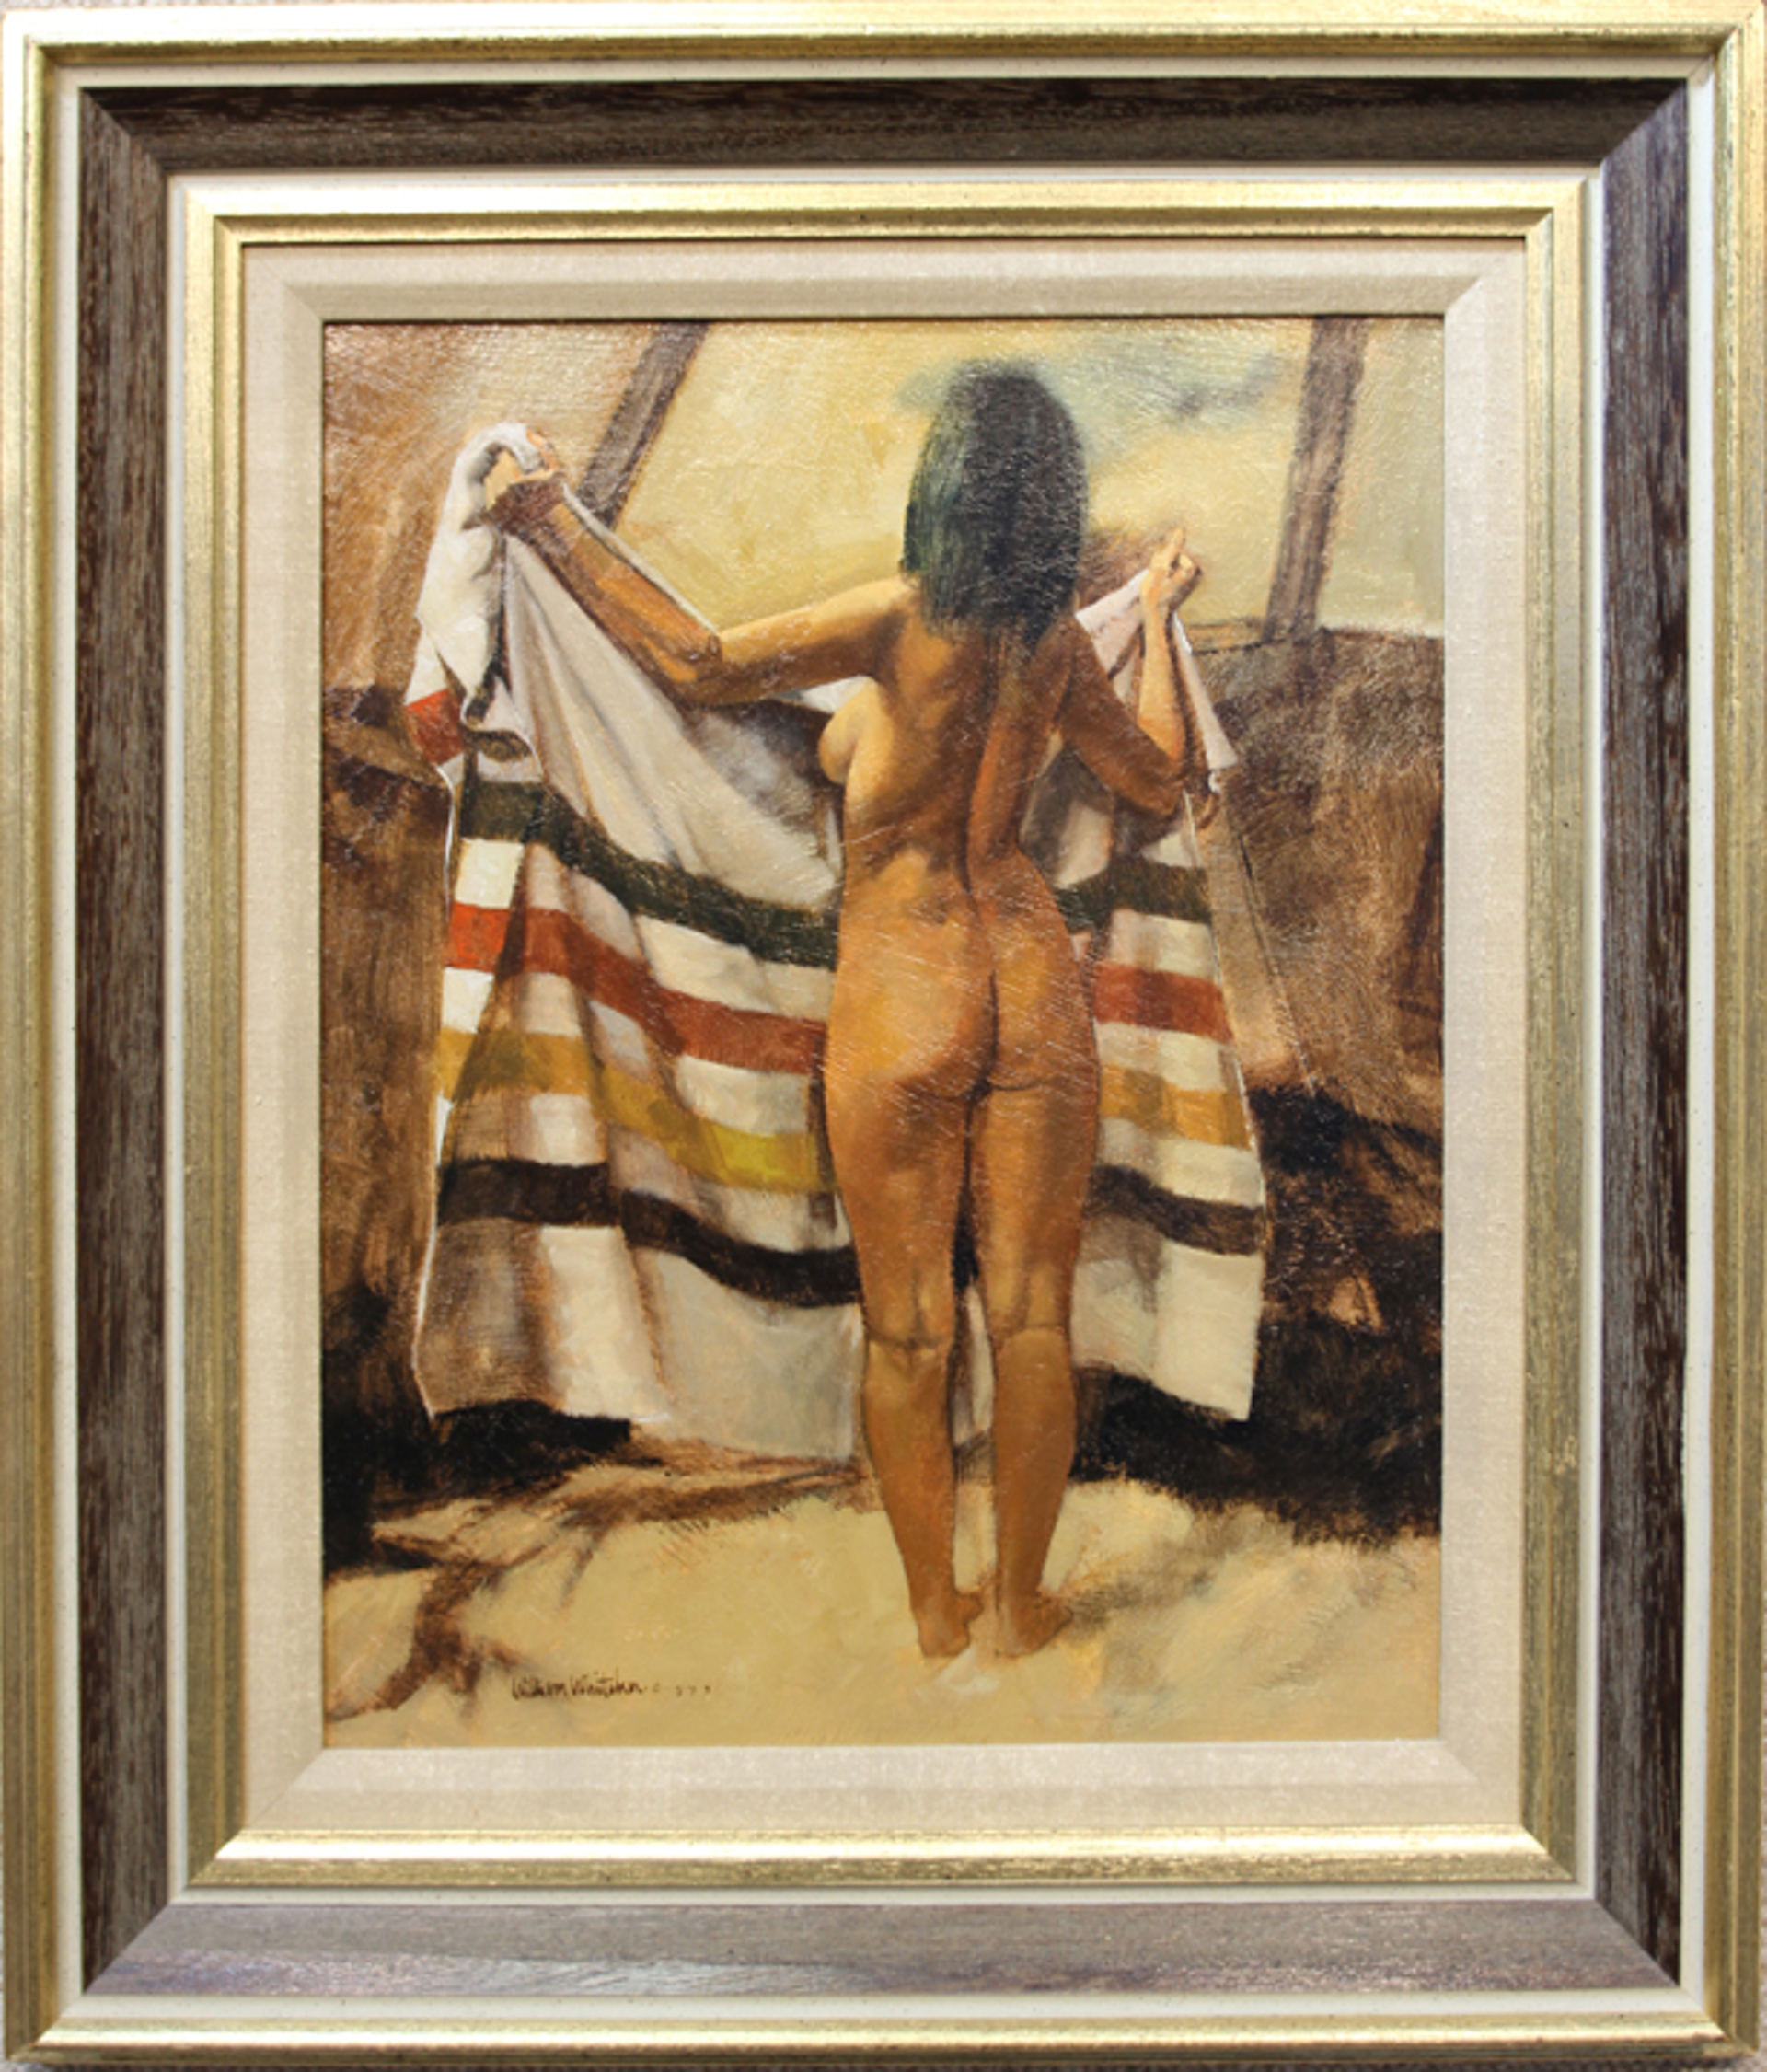 Nude in a Blanket by William Whitaker